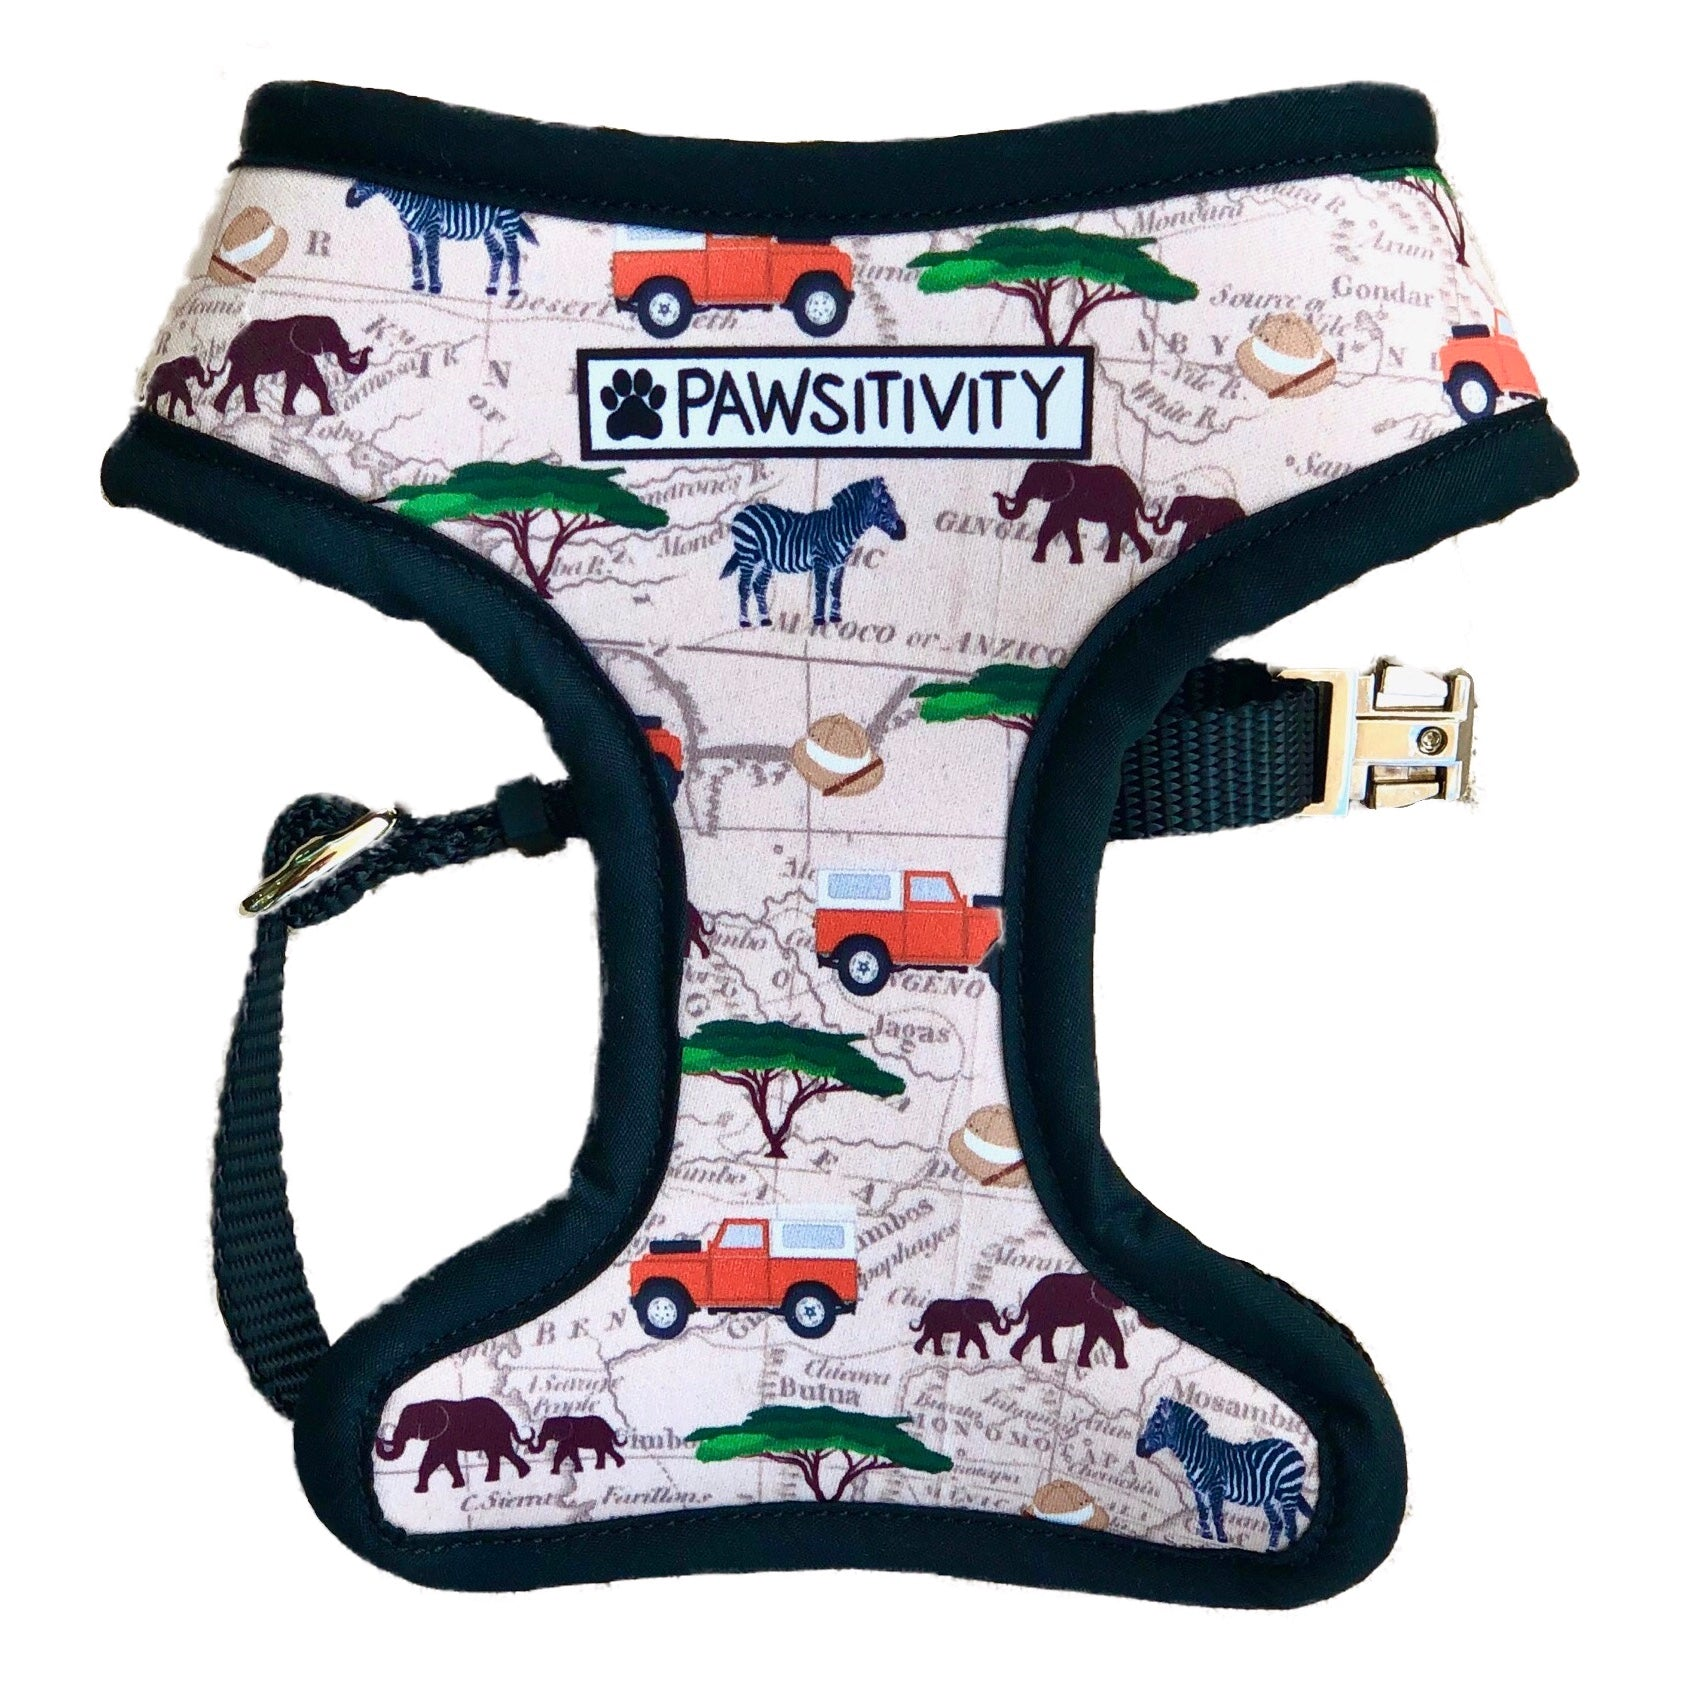 Pawsitivity Reversible Harness - Leopard & Land Woofer